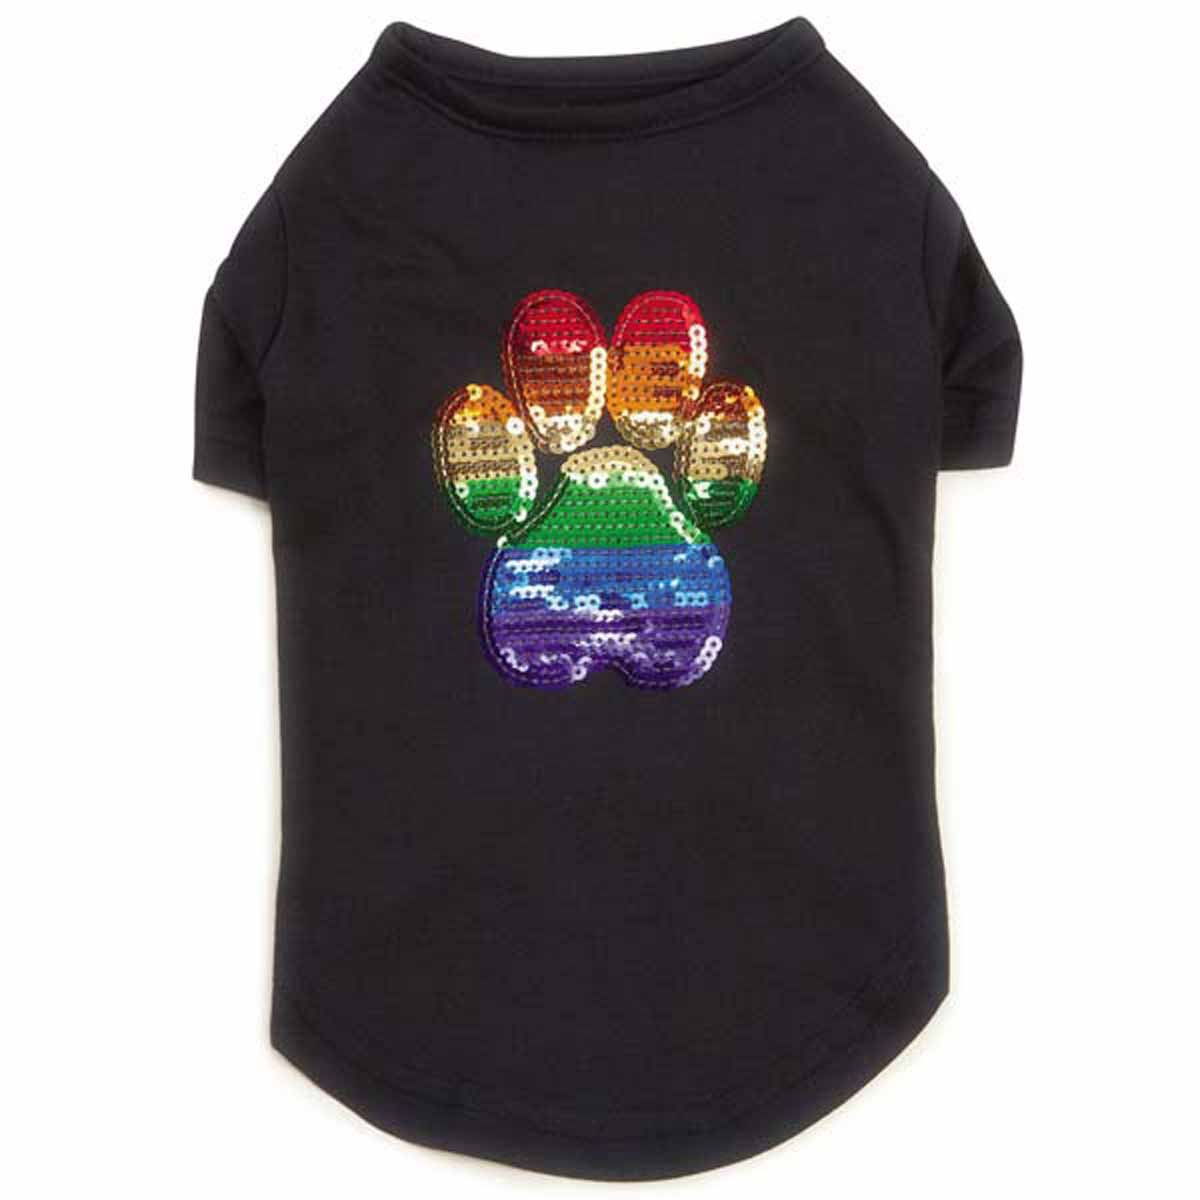 Groovy Puppy Pride Sequin Dog Upf Puppy Pride Sequin Dog Upf Baxterboo Dog T Shirts Humans Amazon Dog T Shirts Ebay bark post Dog T Shirts